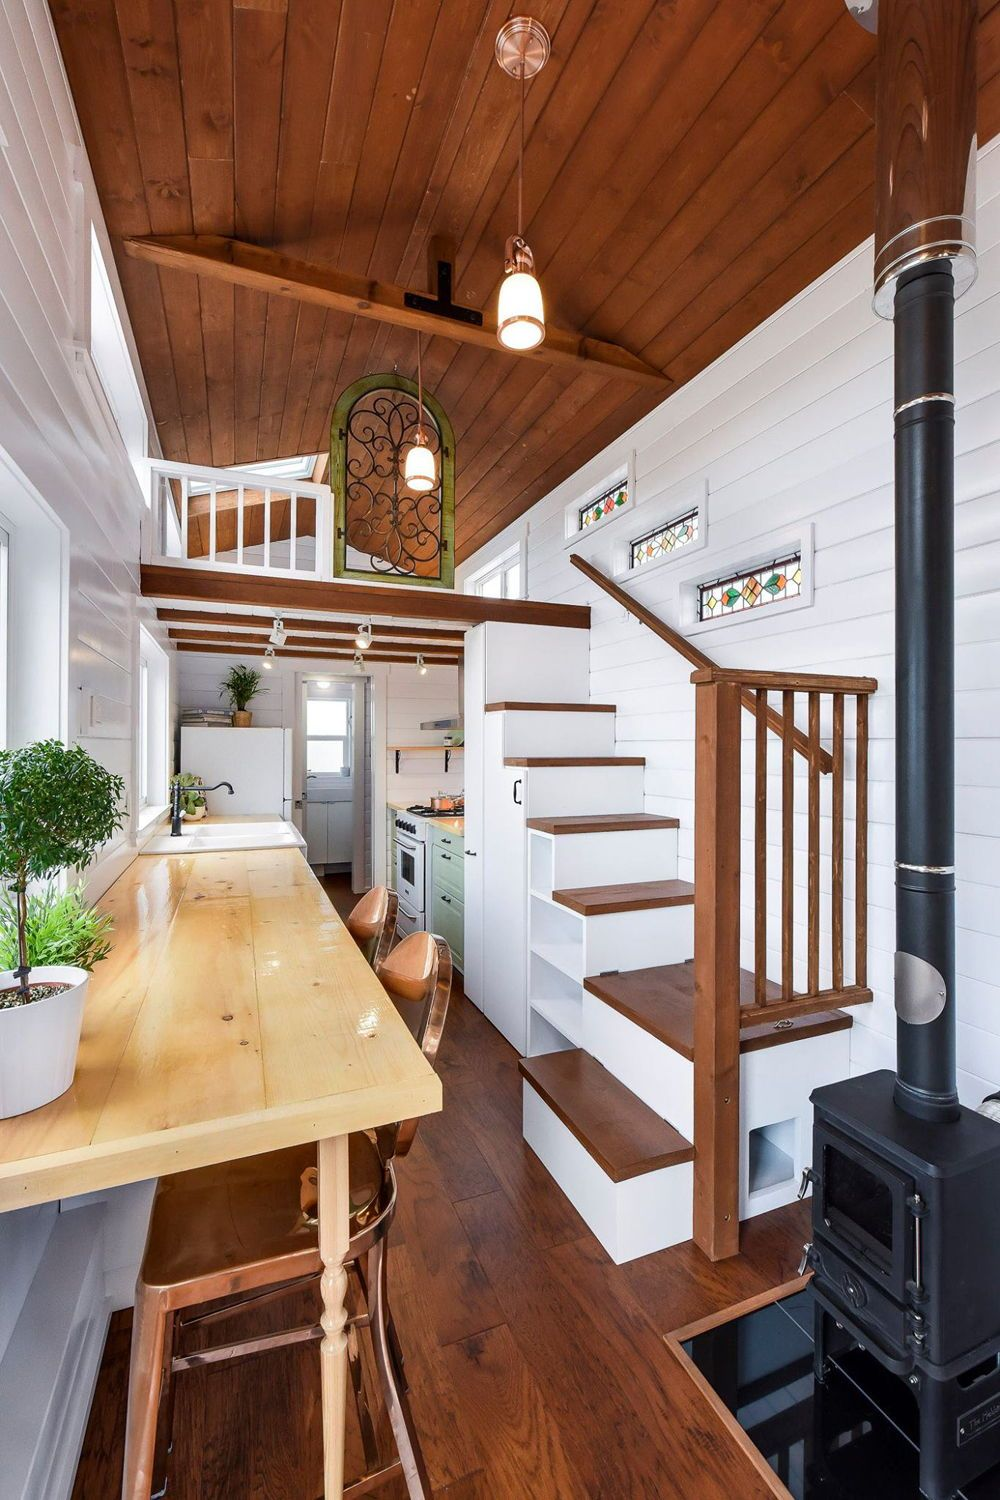 Custom 30 By Mint Tiny Homes Tiny Living In 2020 Tiny House Interior Design Living Room Design Small Spaces Tiny House Rustic